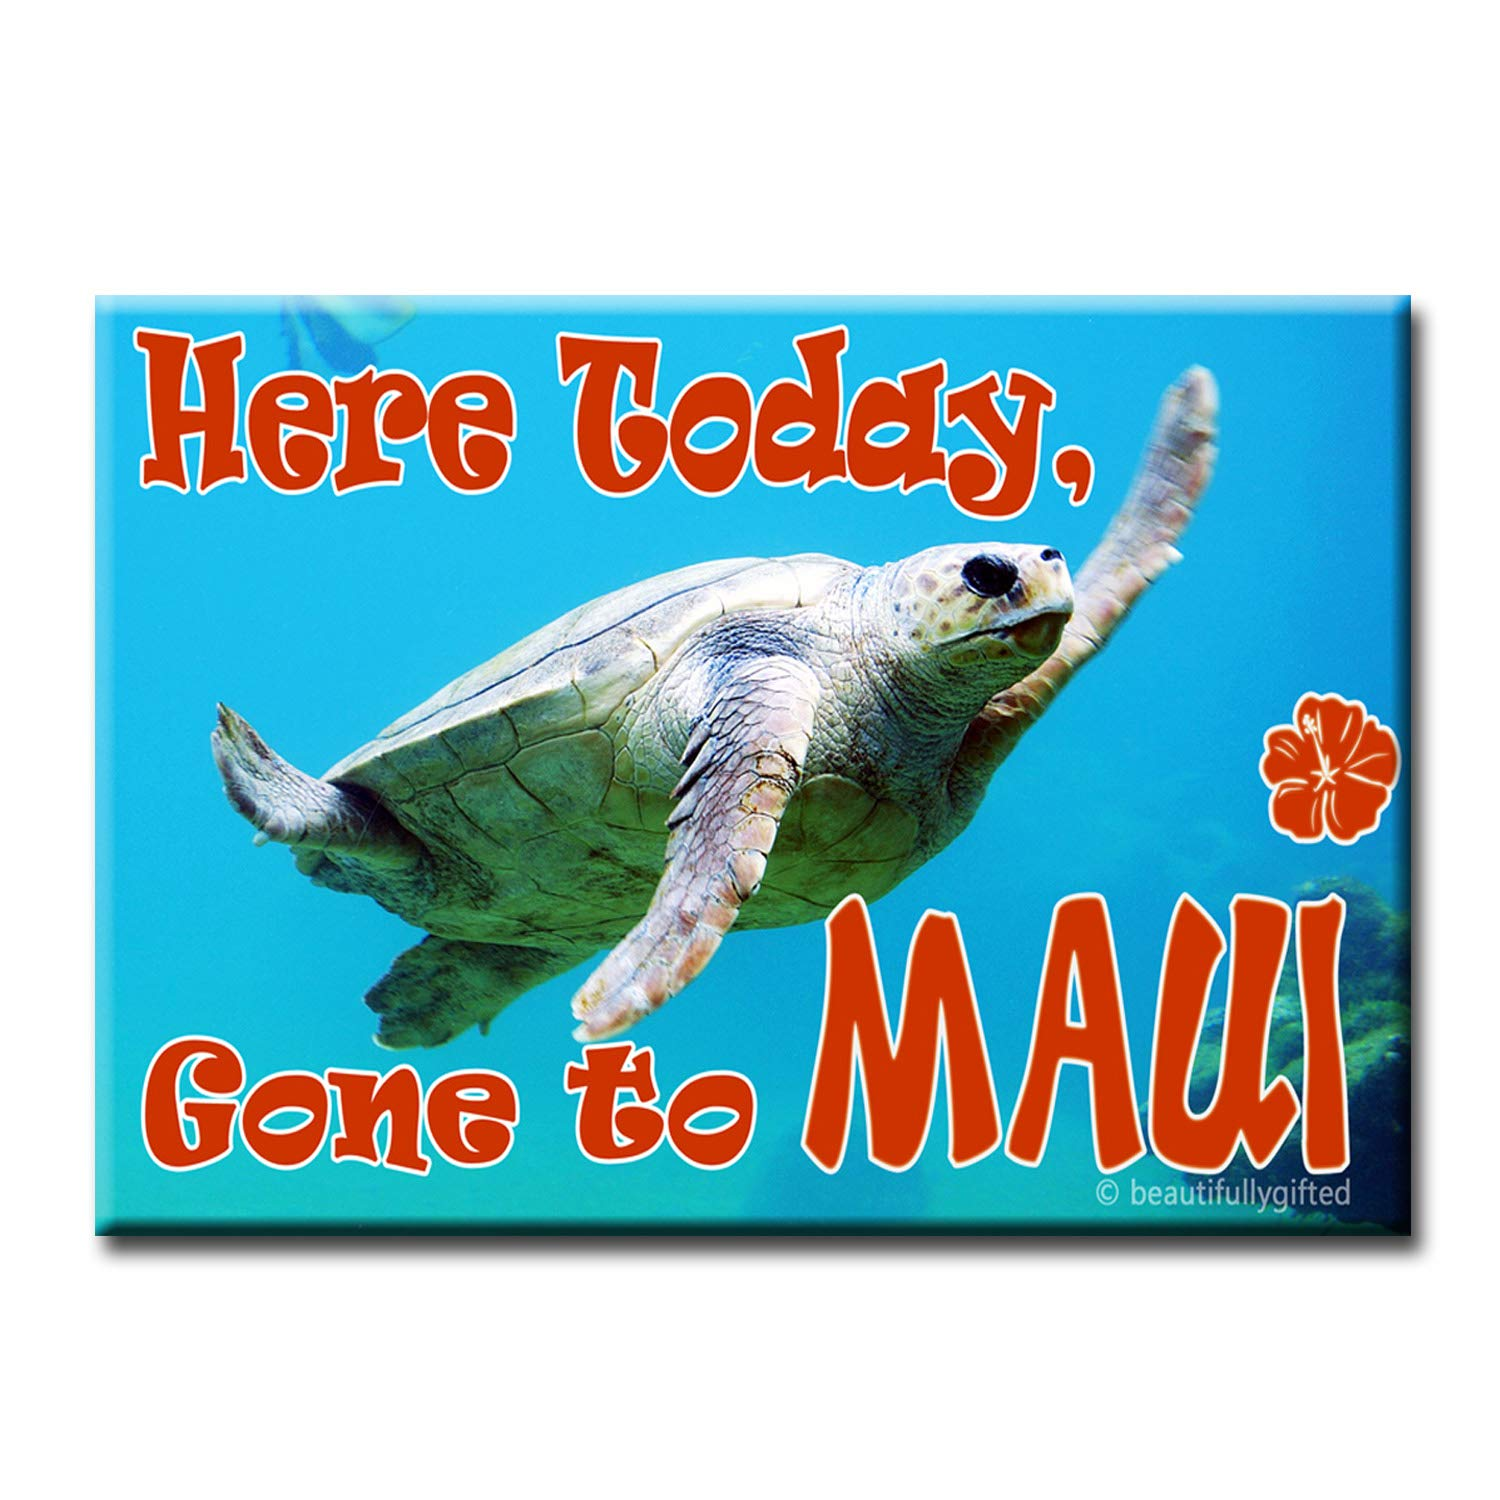 Here Today Gone to Maui - Hawaiian Souvenir Magnet   FUNNY HONU TURTLE SMILING & WAVING GOODBYE! - Aloha Decorative Keepsake Best for Refrigerator at Home or Office